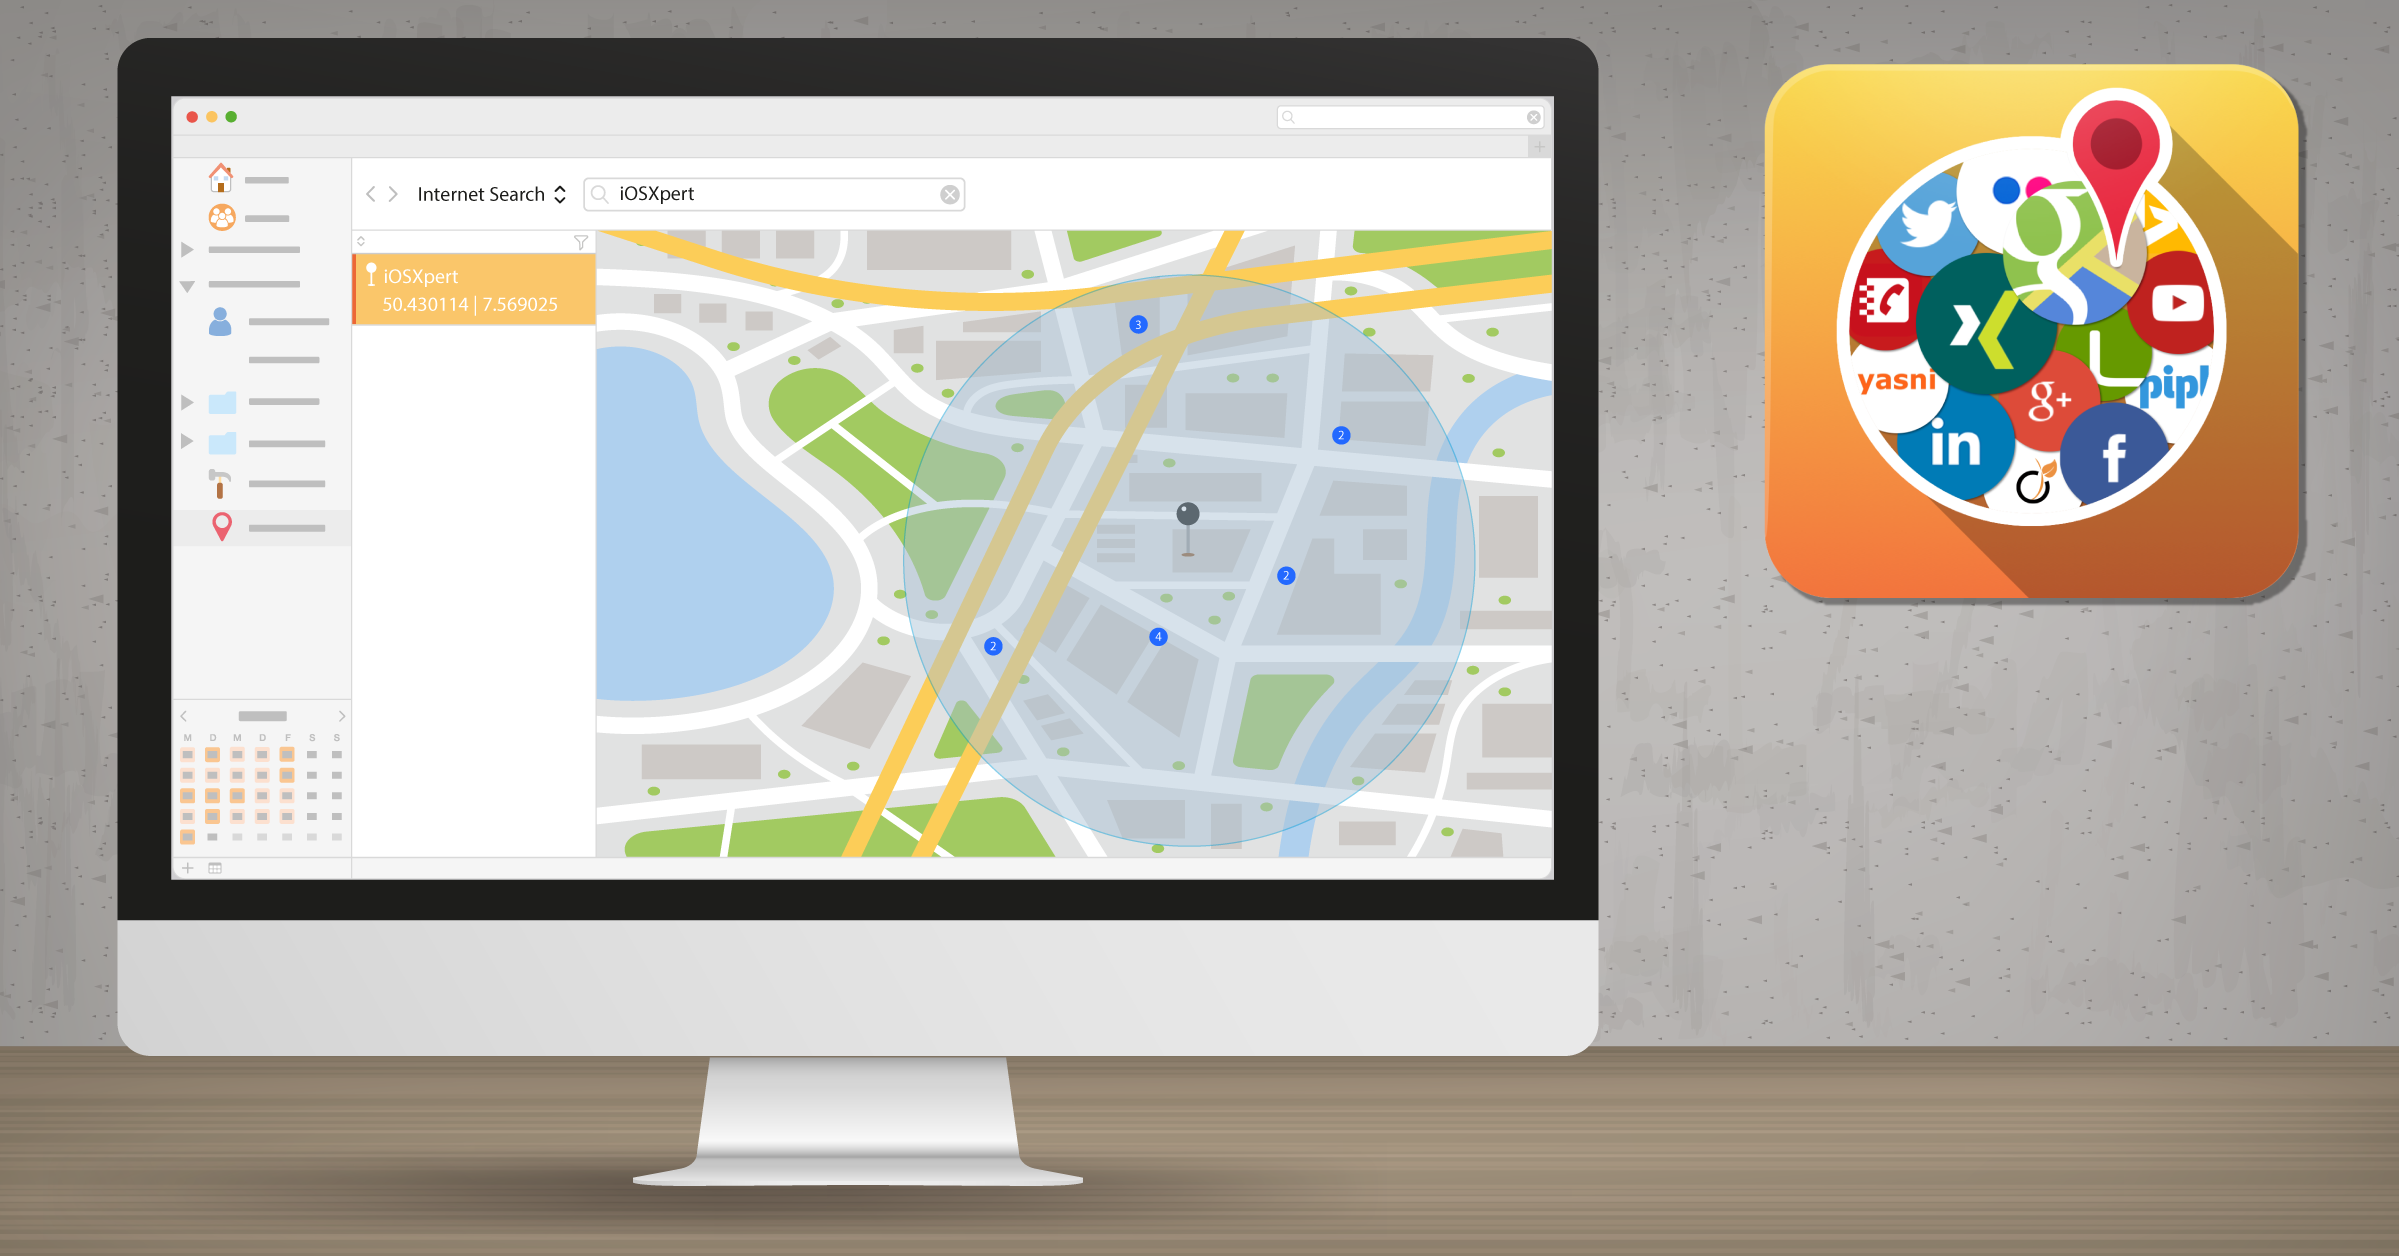 Daylite Tip: The Proximity Search in Web&Map